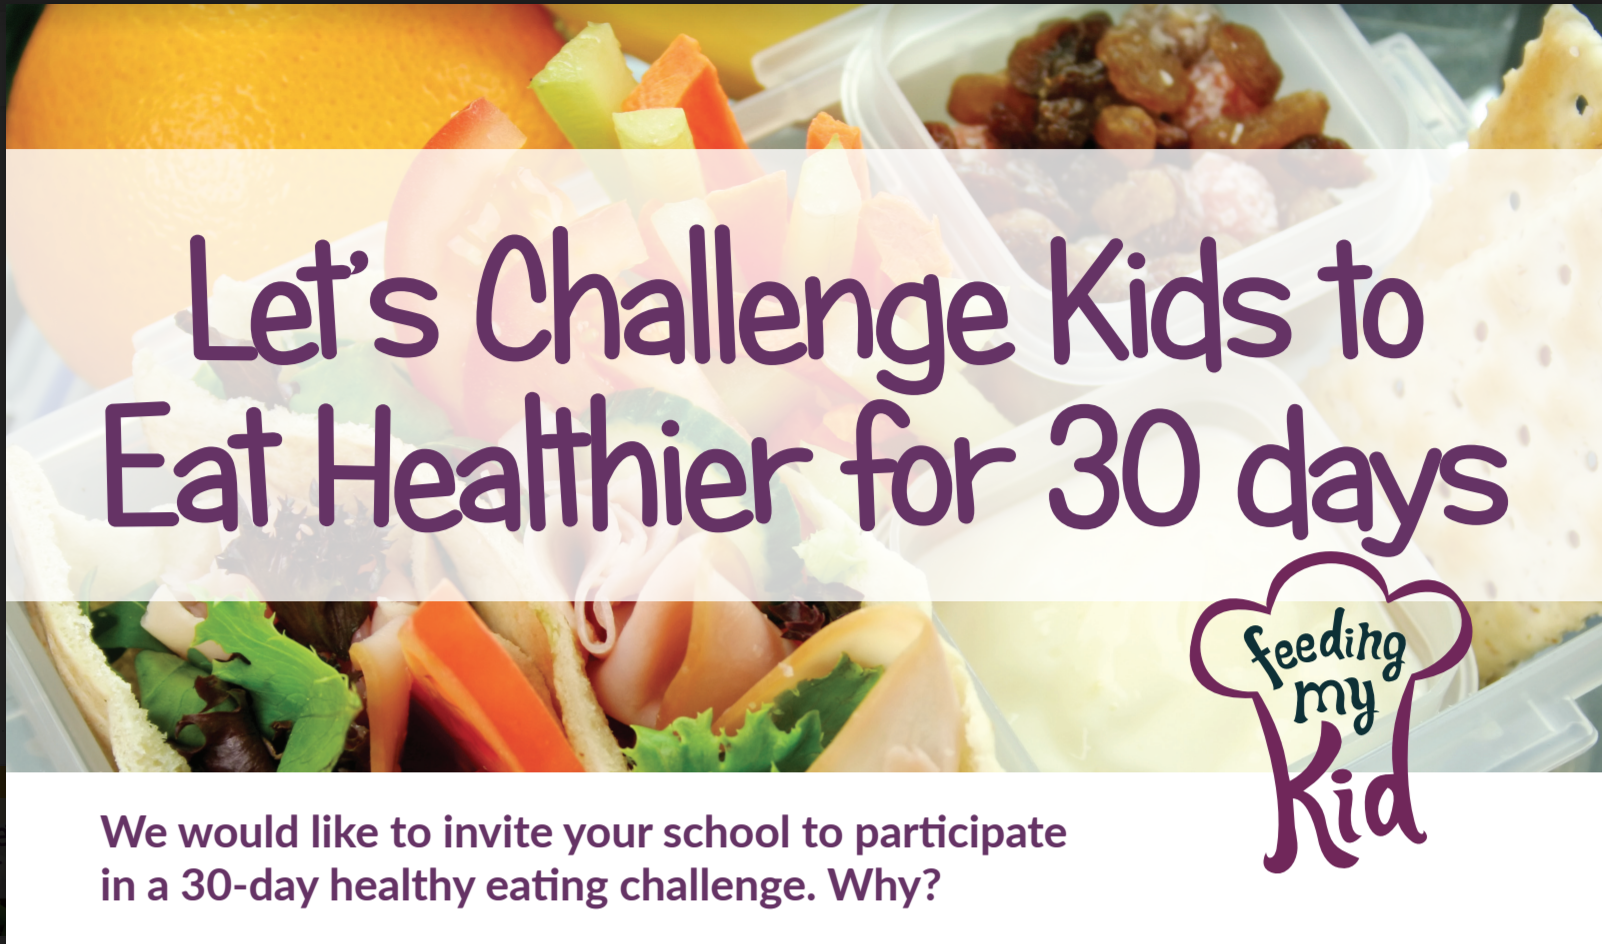 Parents, Take this 30 Day Healthy Eating Challenge With Your Kids